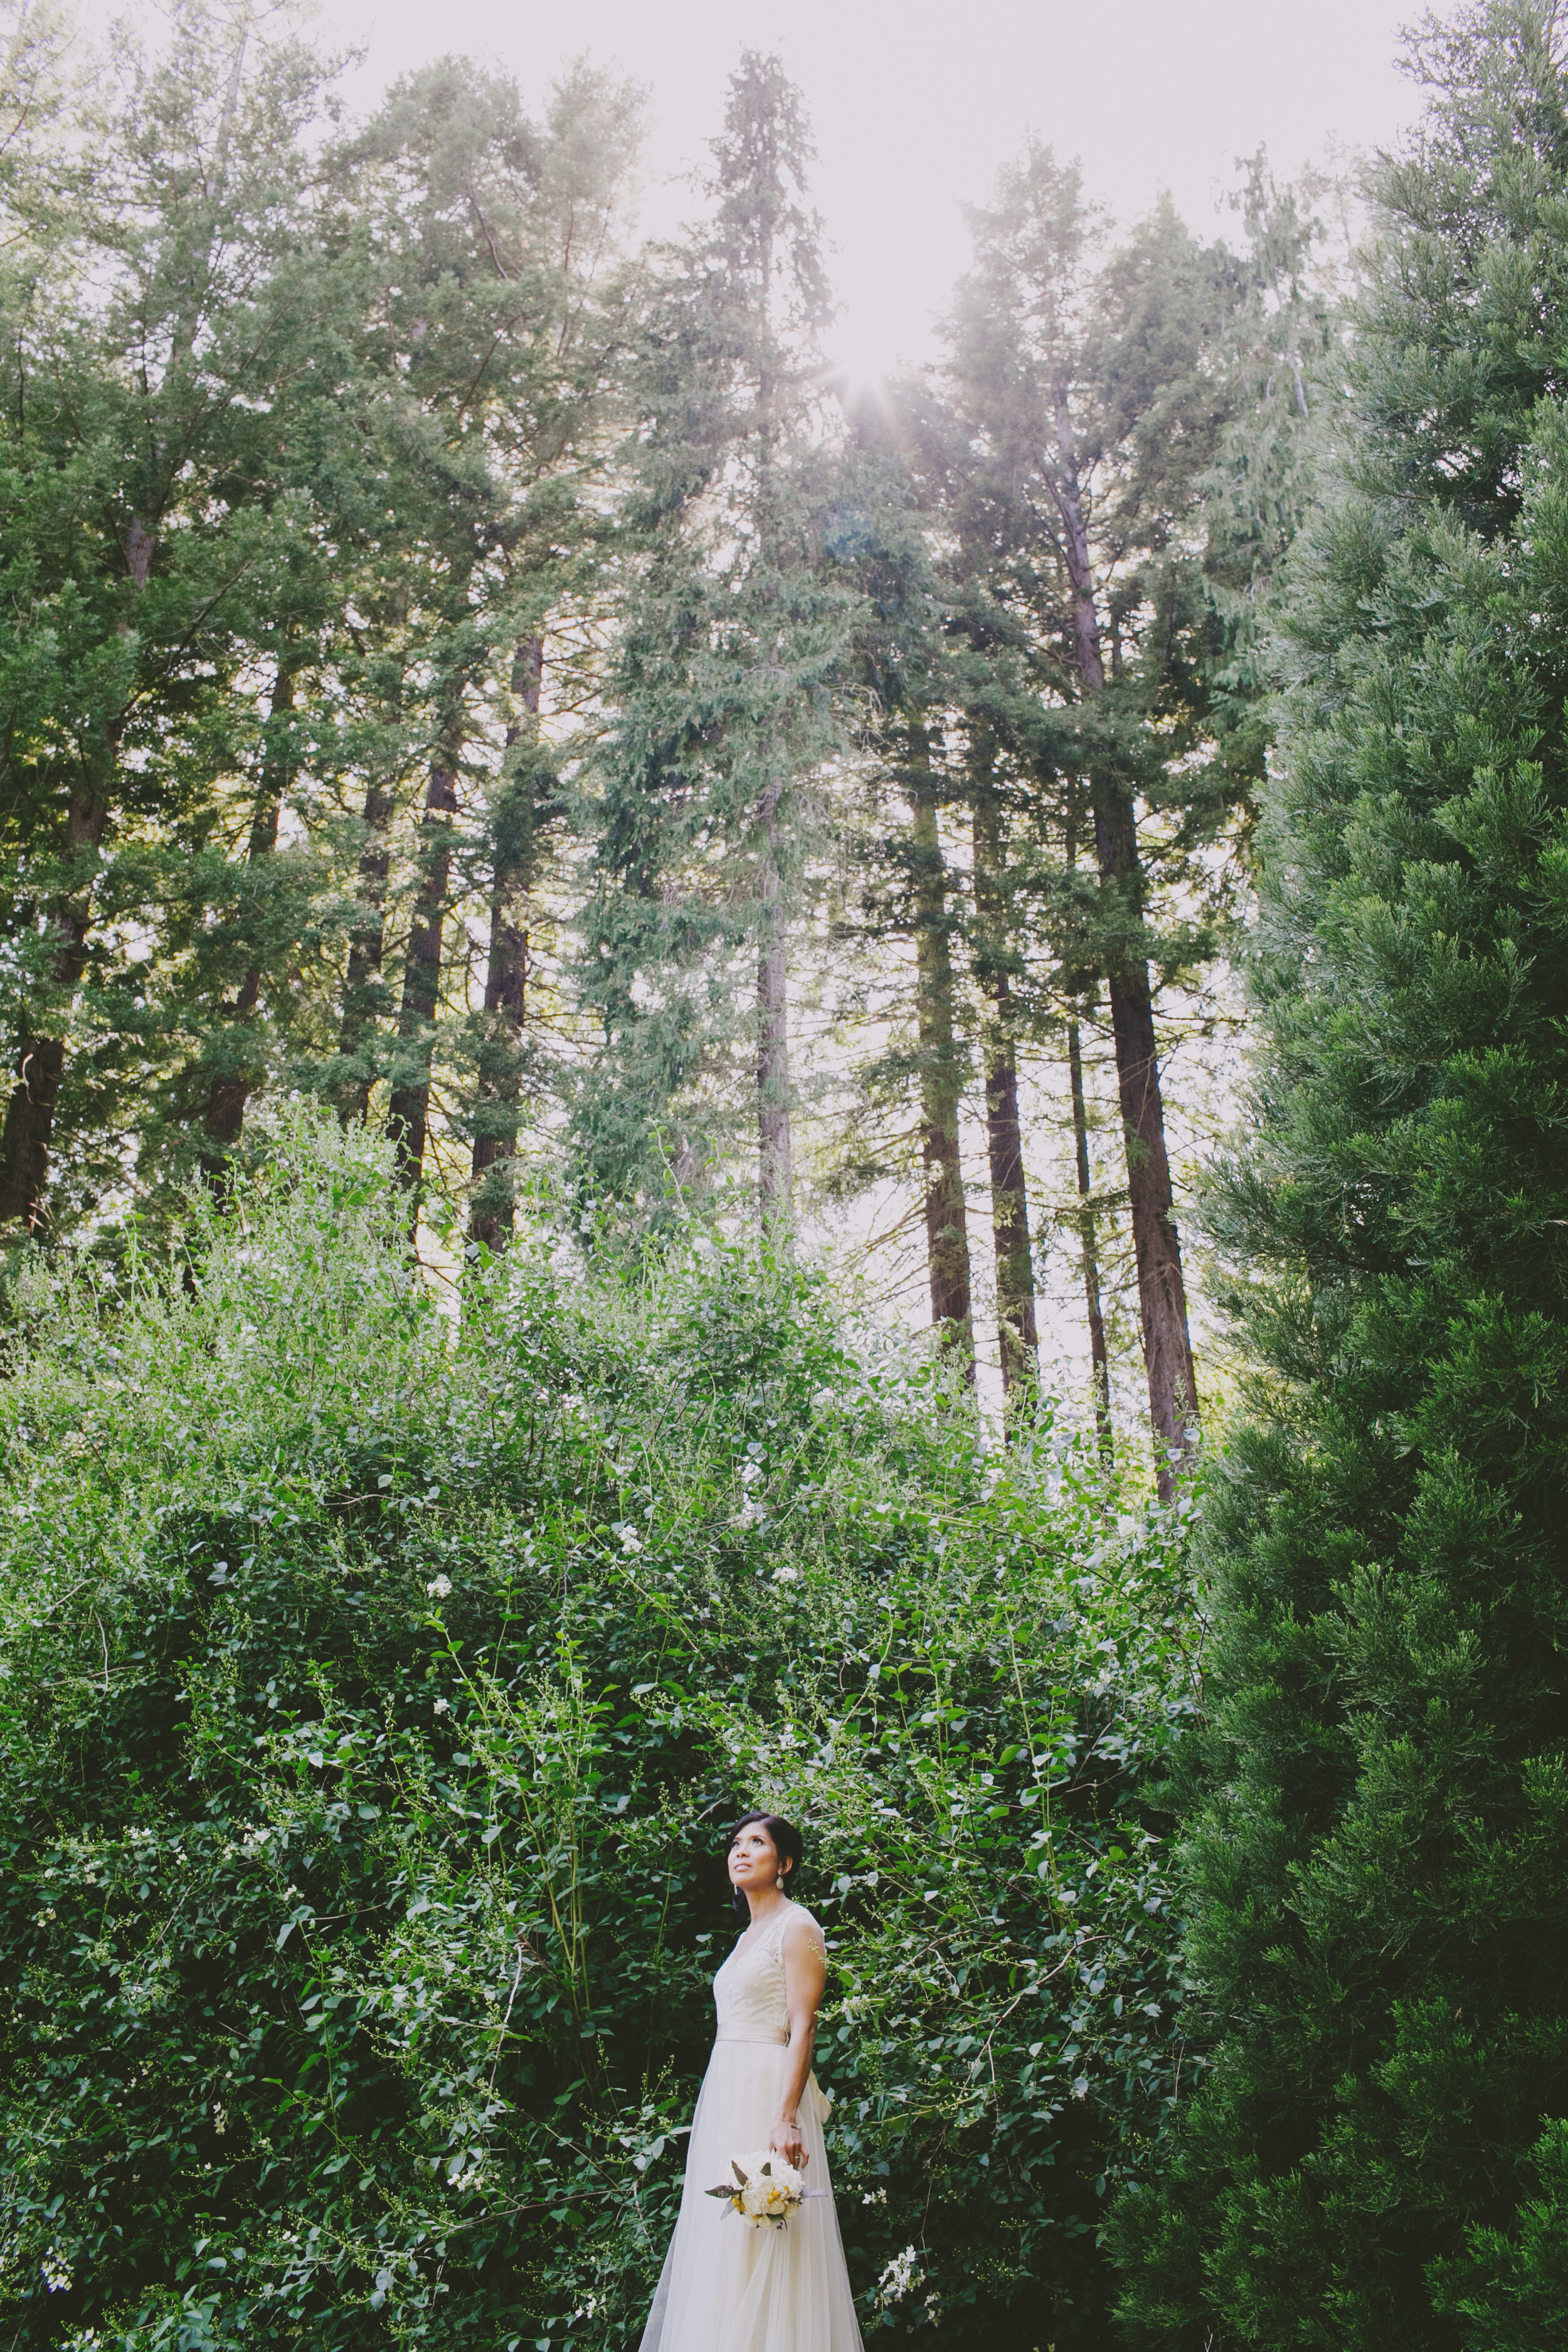 Tilden_Wedding_Berkeley-25.JPG